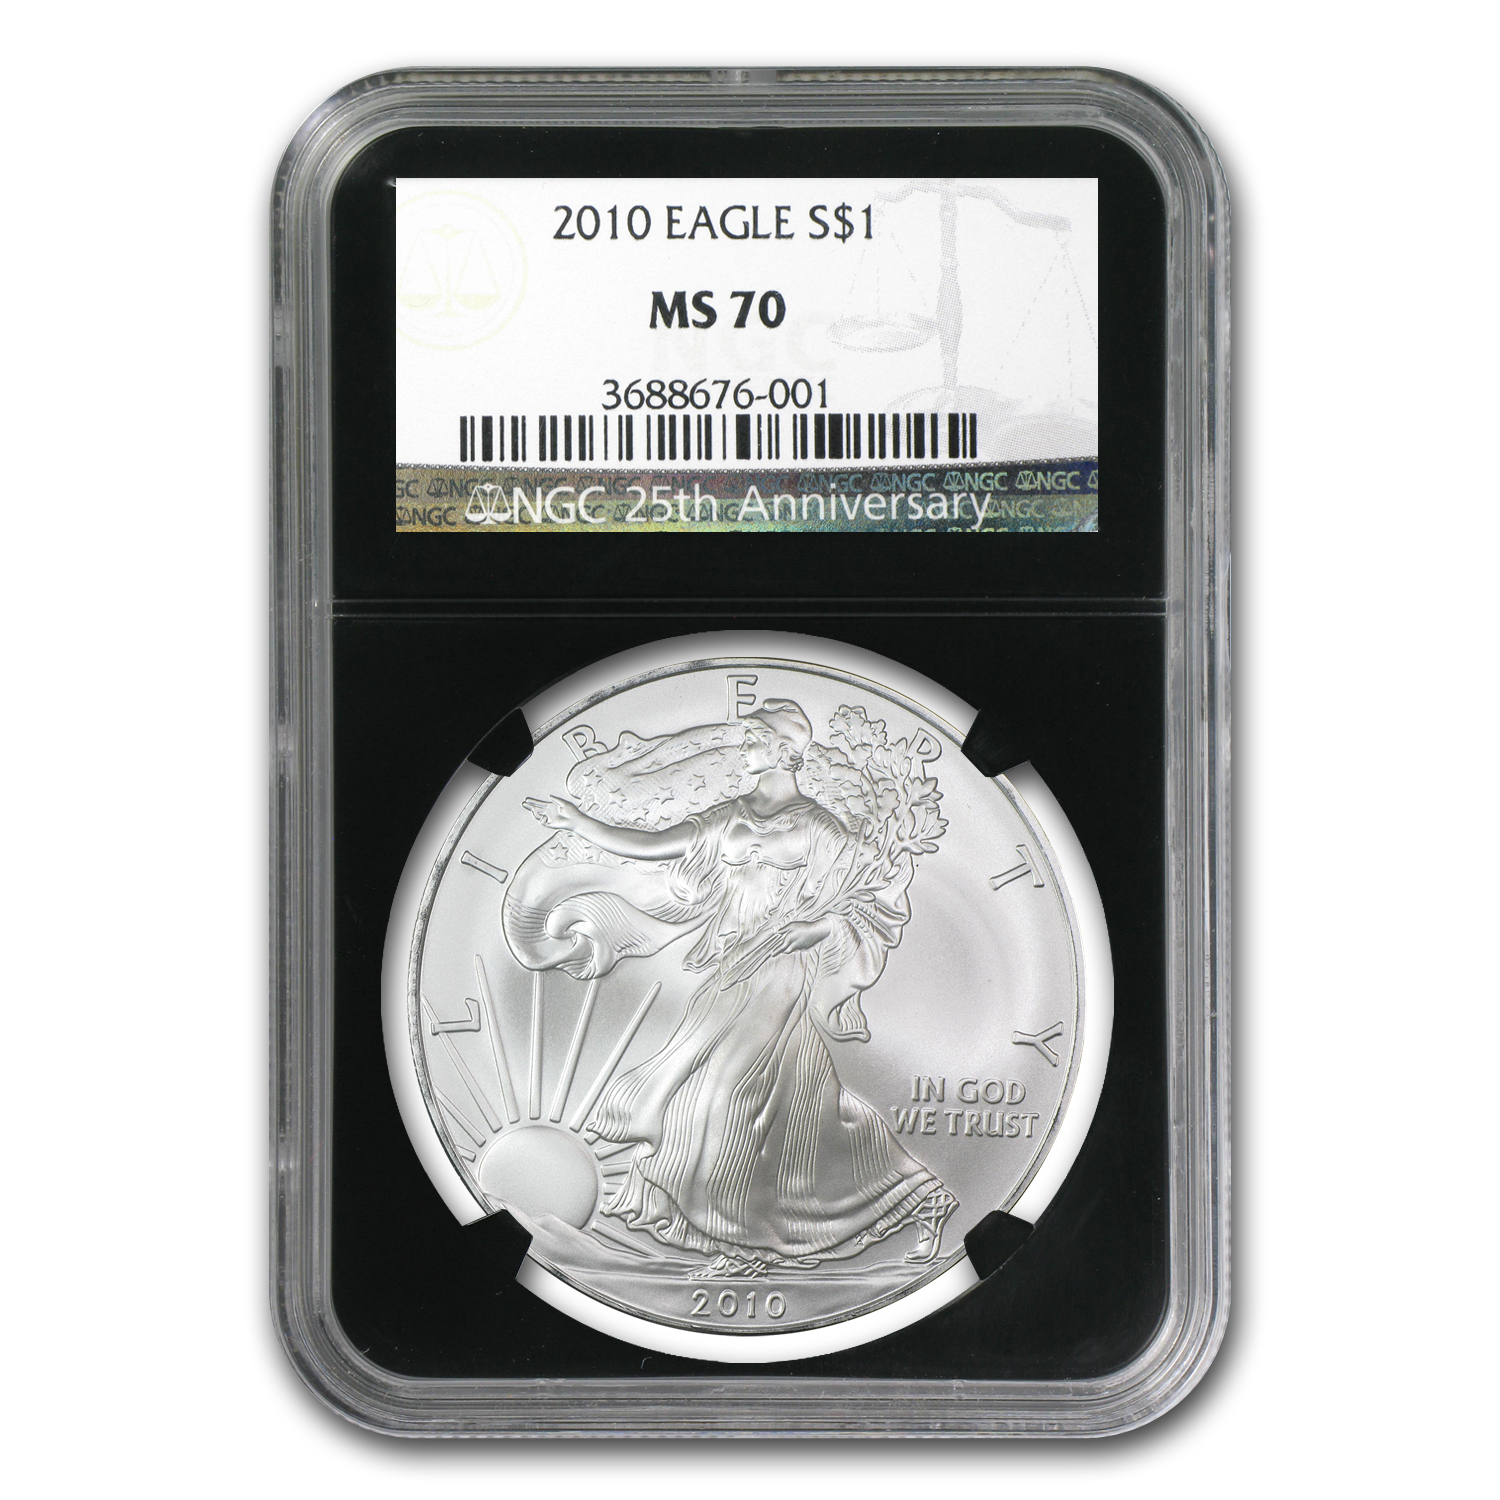 2010 Silver American Eagle MS-70 NGC (Retro Black Insert)